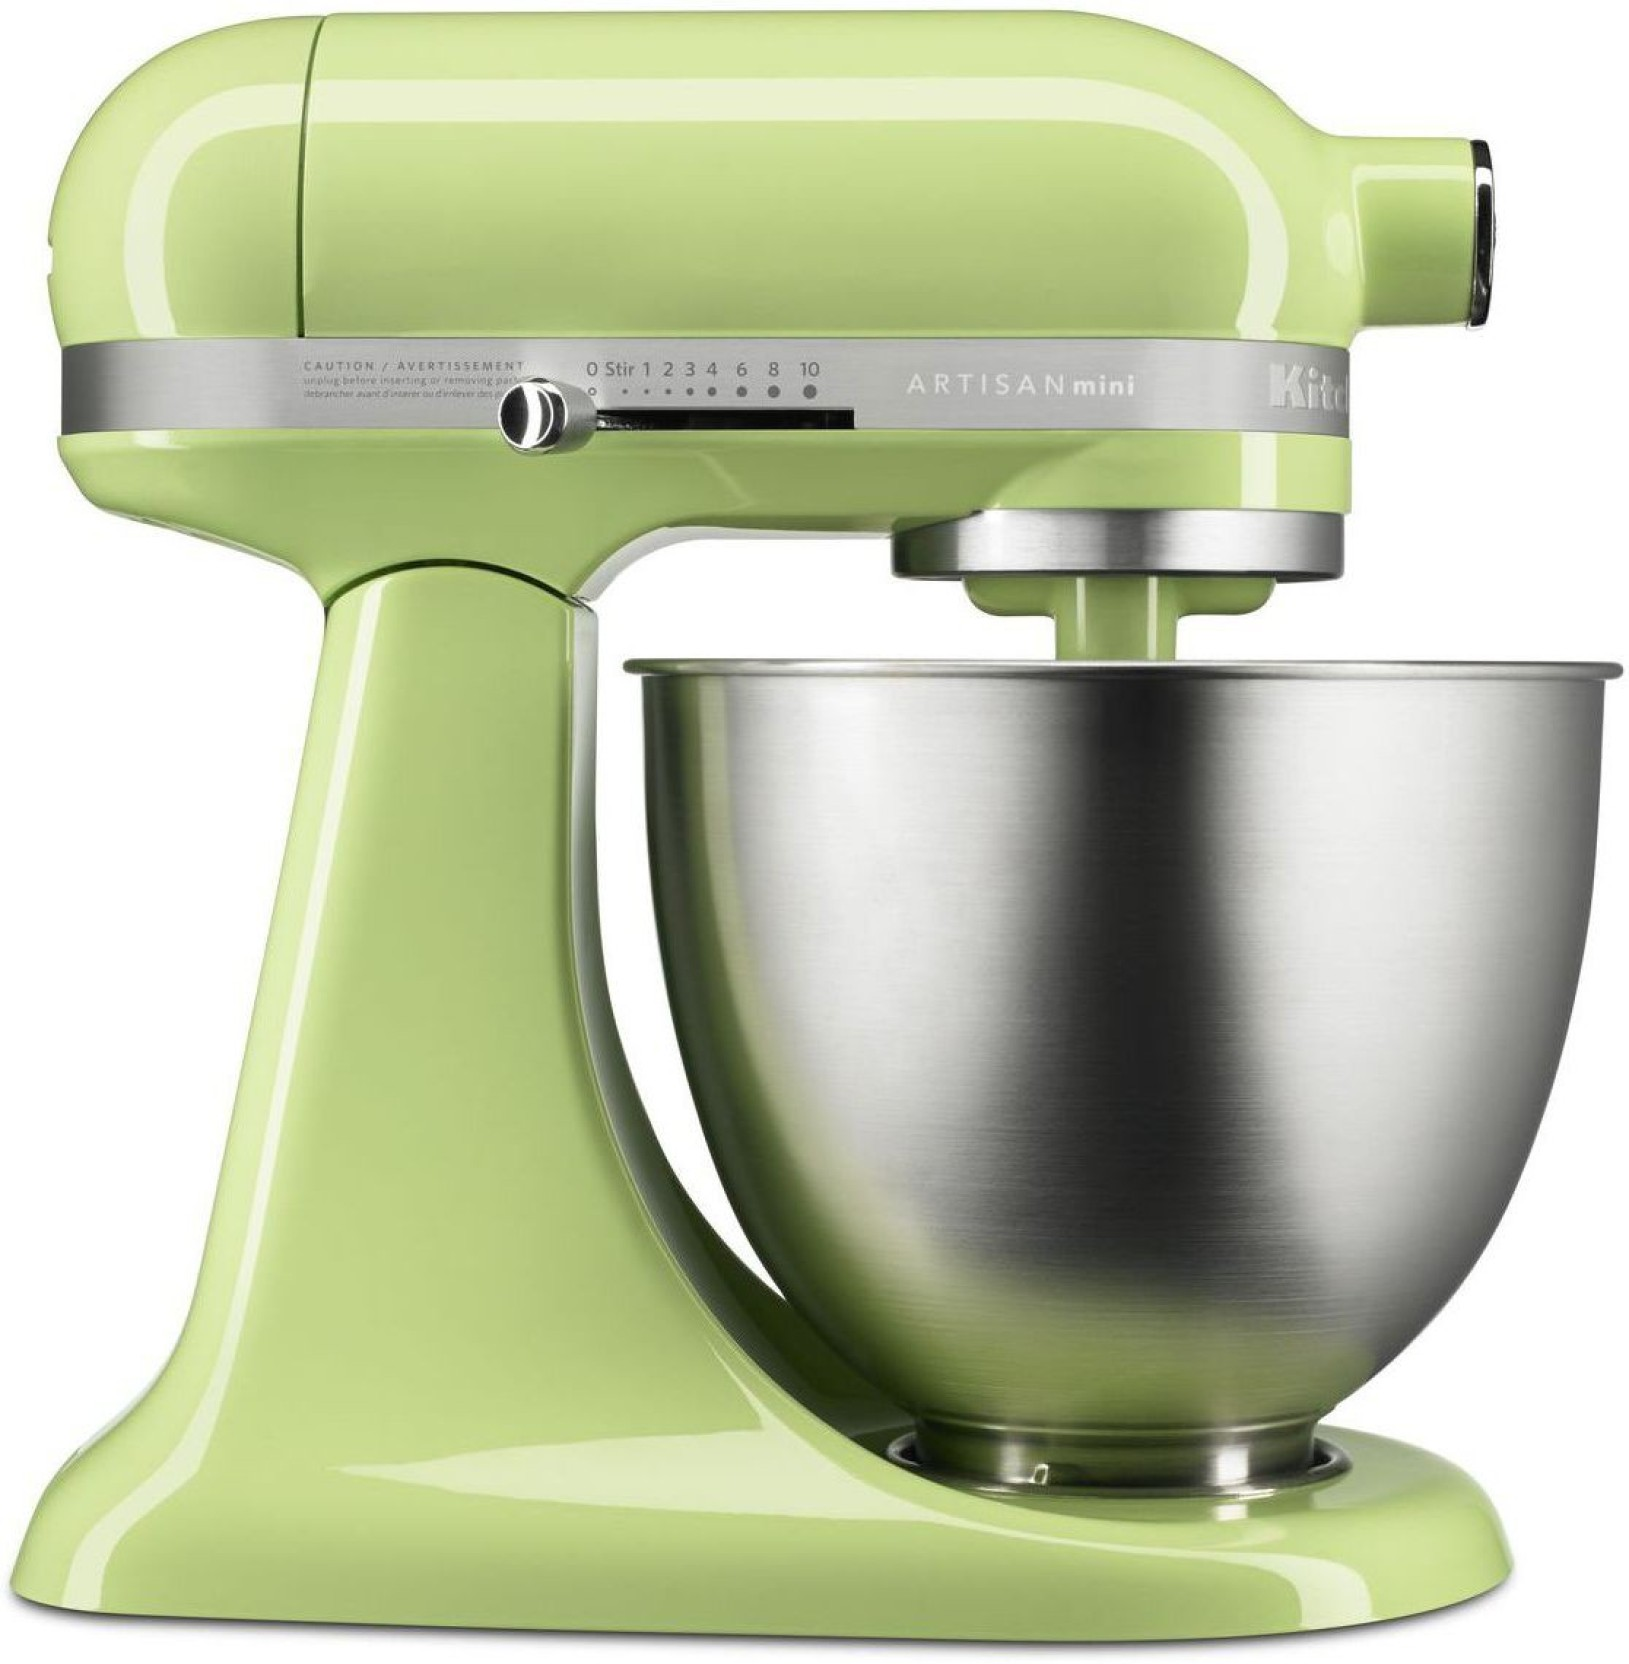 Kitchenaid 5Ksm3311Xbhw 250 Mixer Grinder Add To Cart